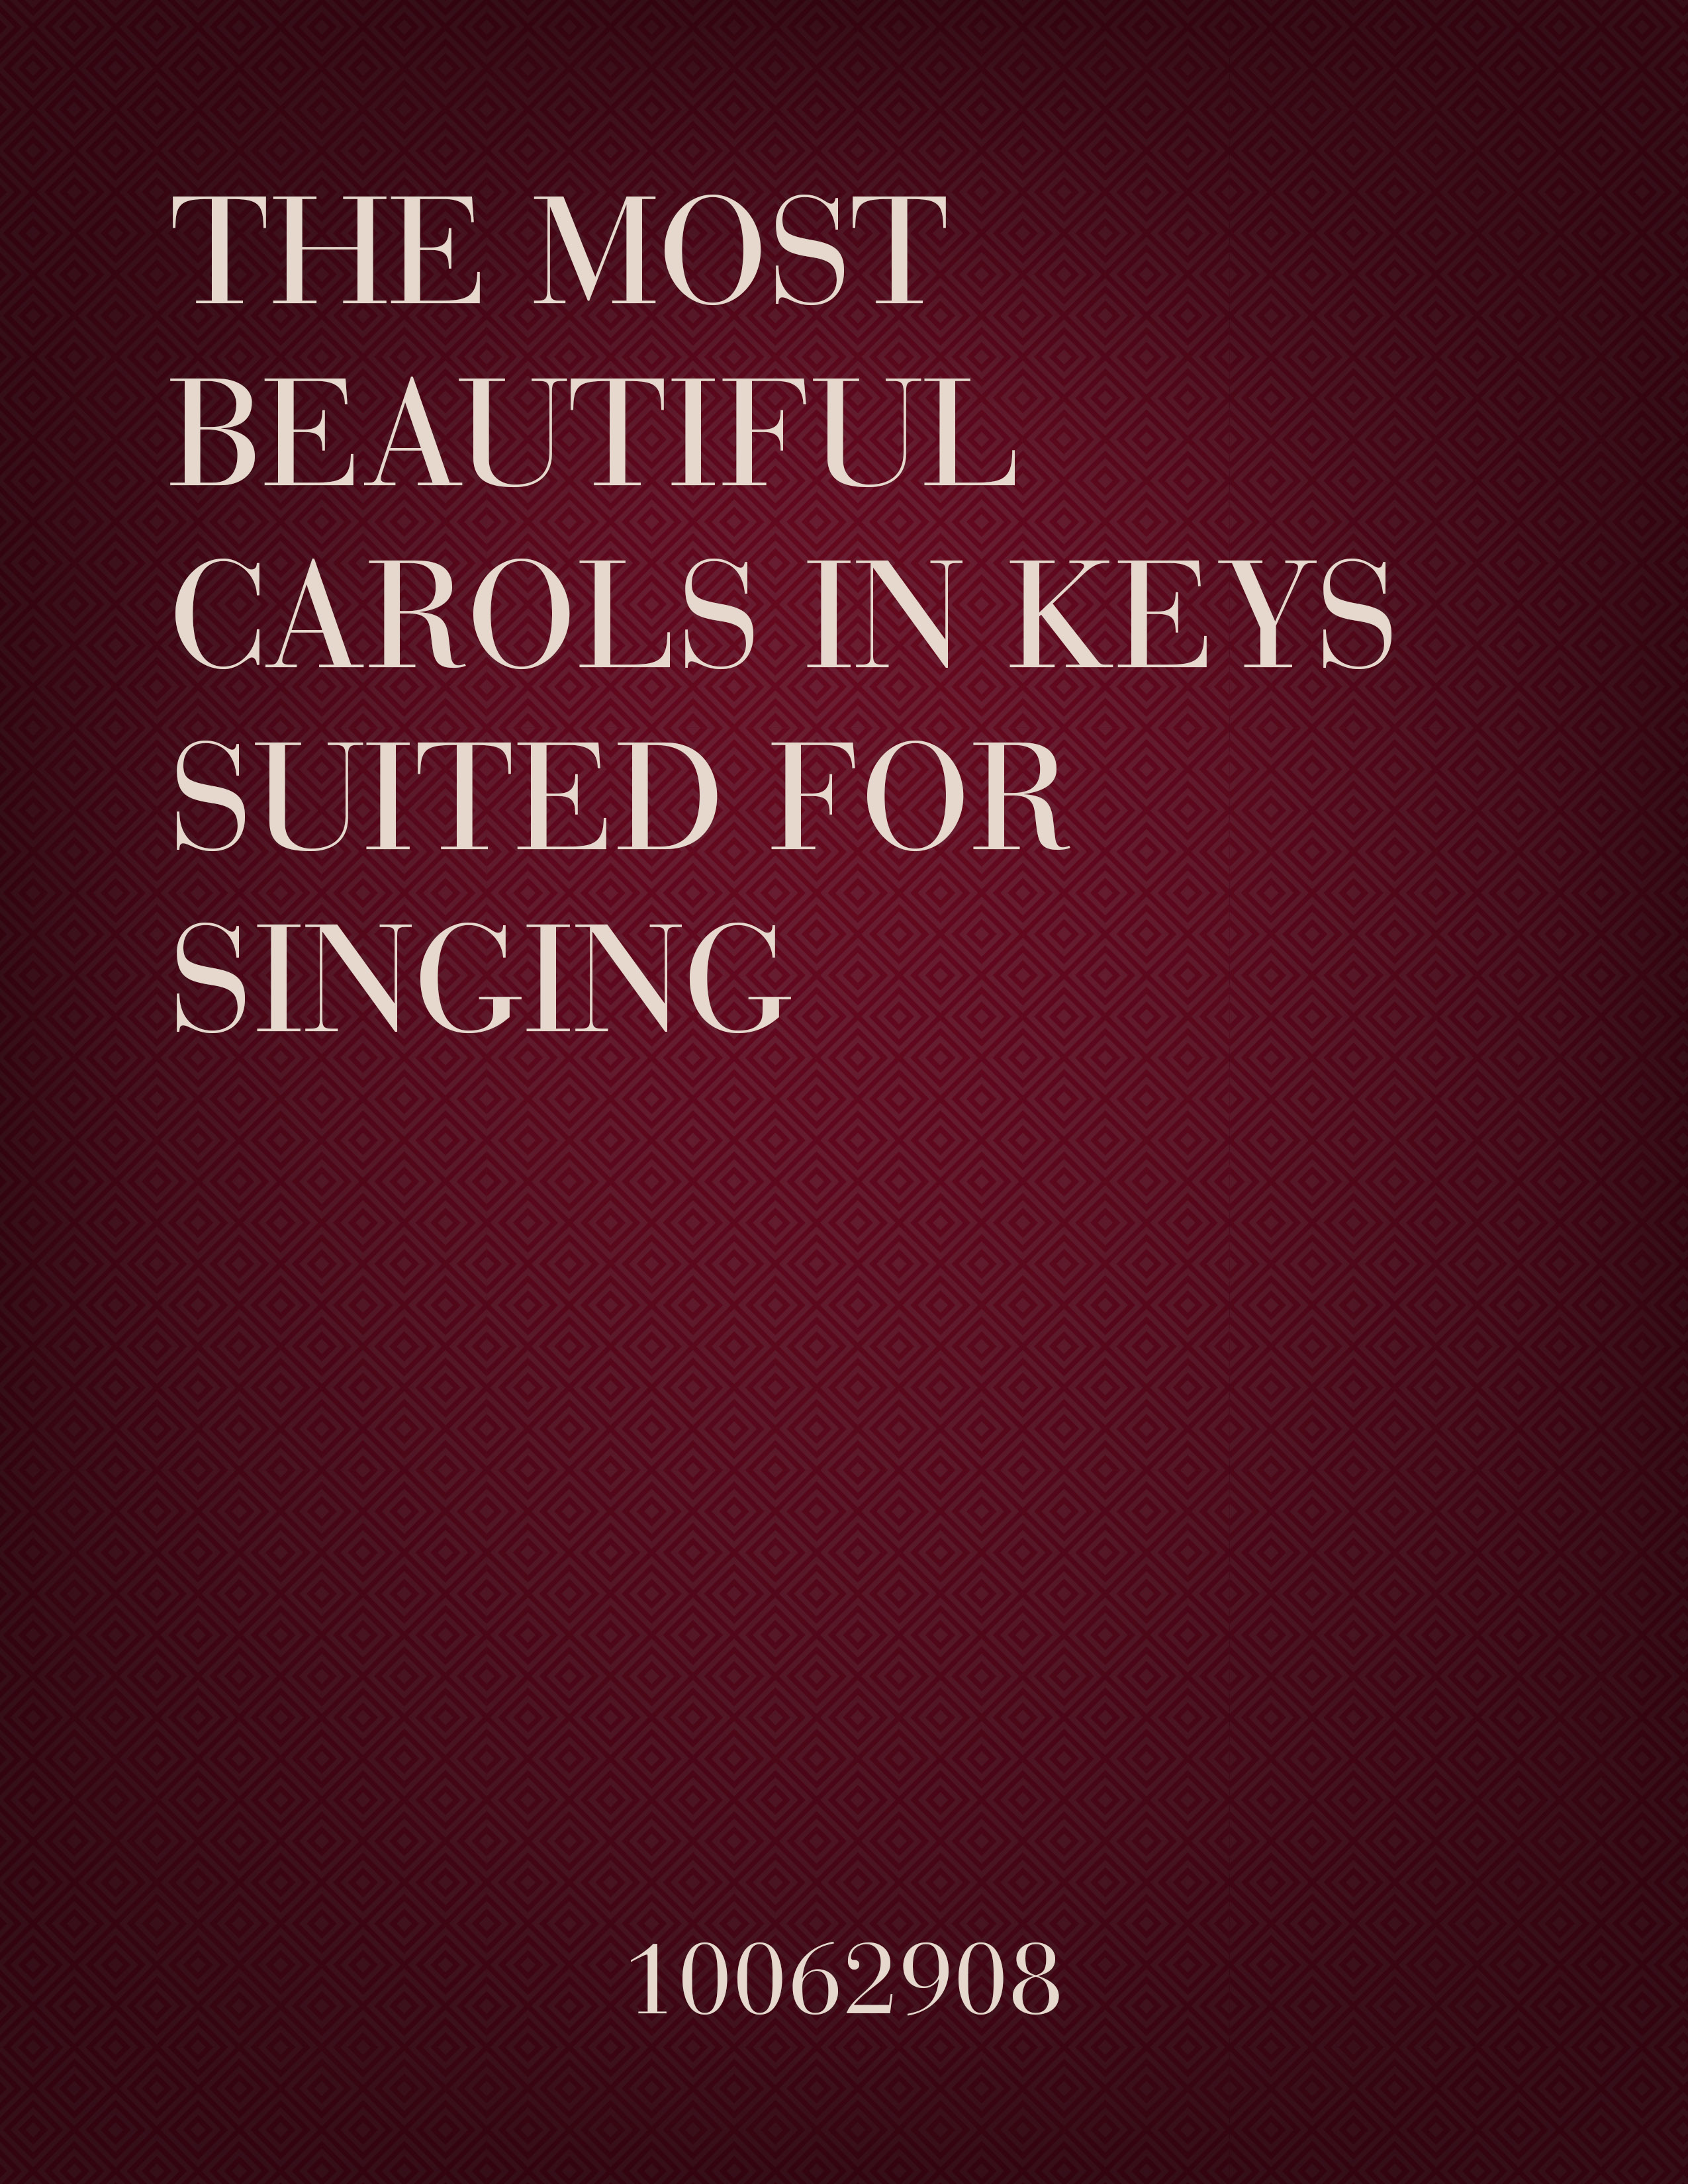 The Most Beautiful Carols in Keys Suited for Singing